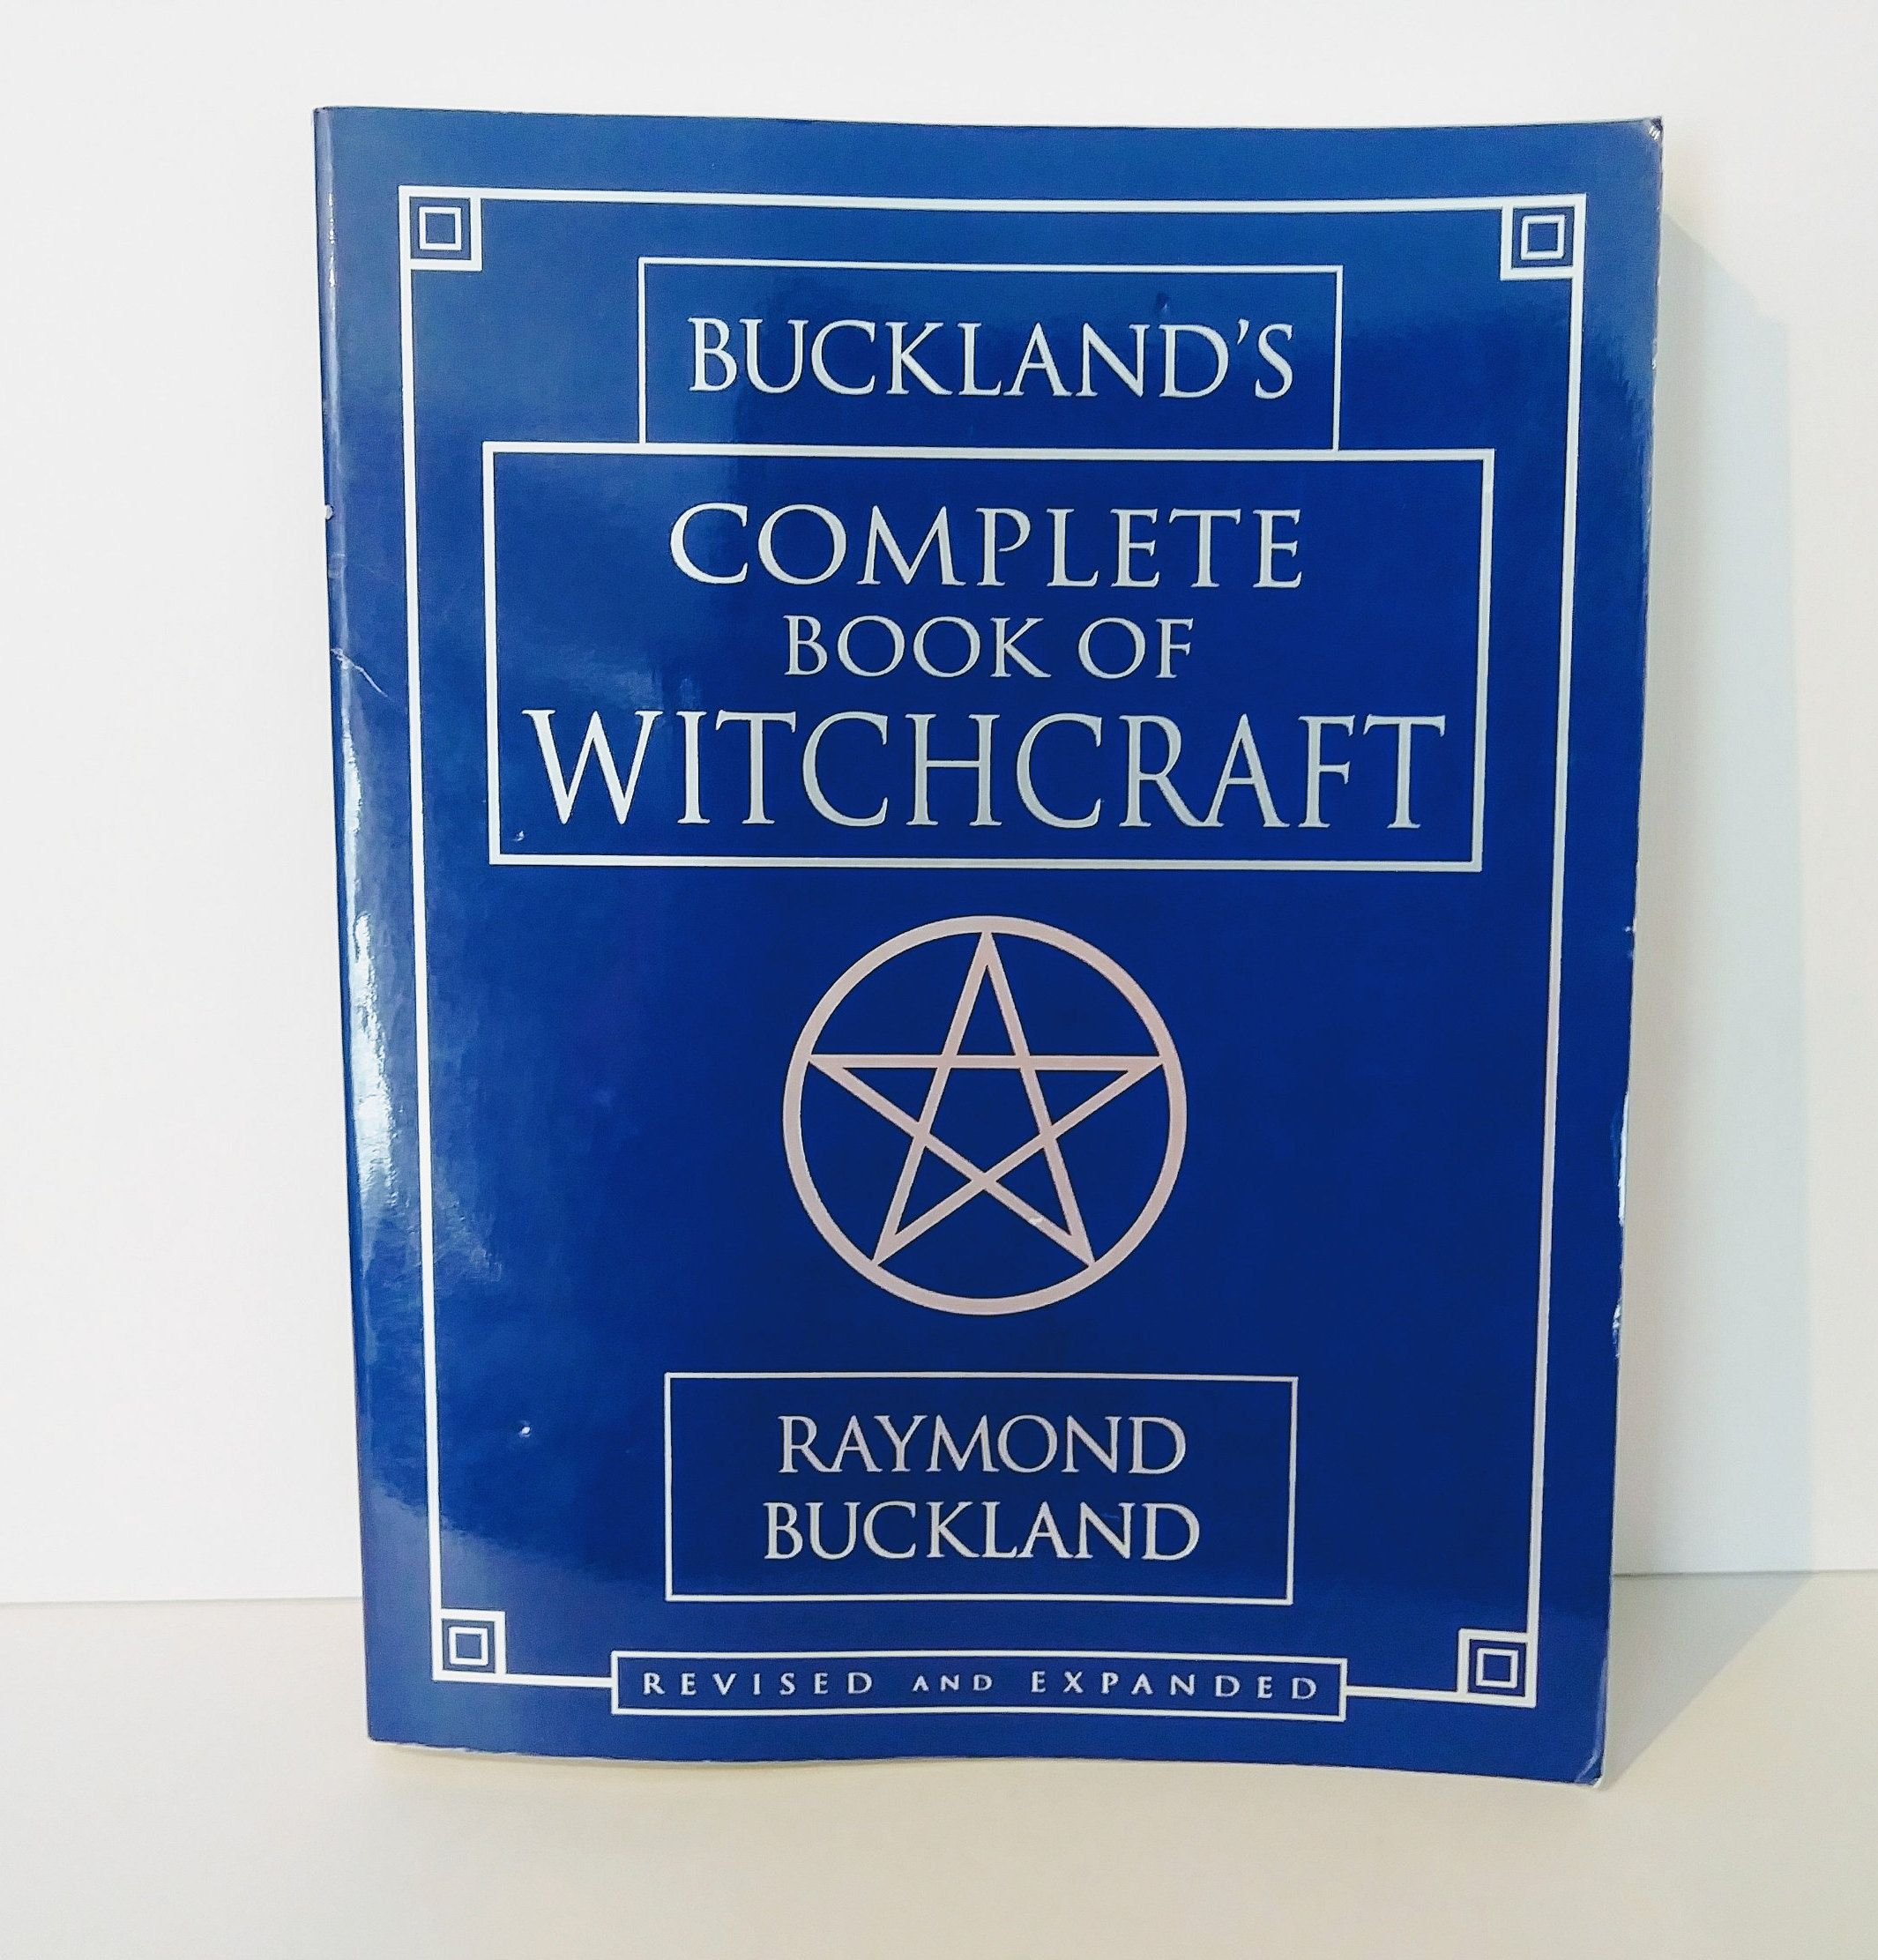 Bucklands complete book of witchcraft raymond buckland